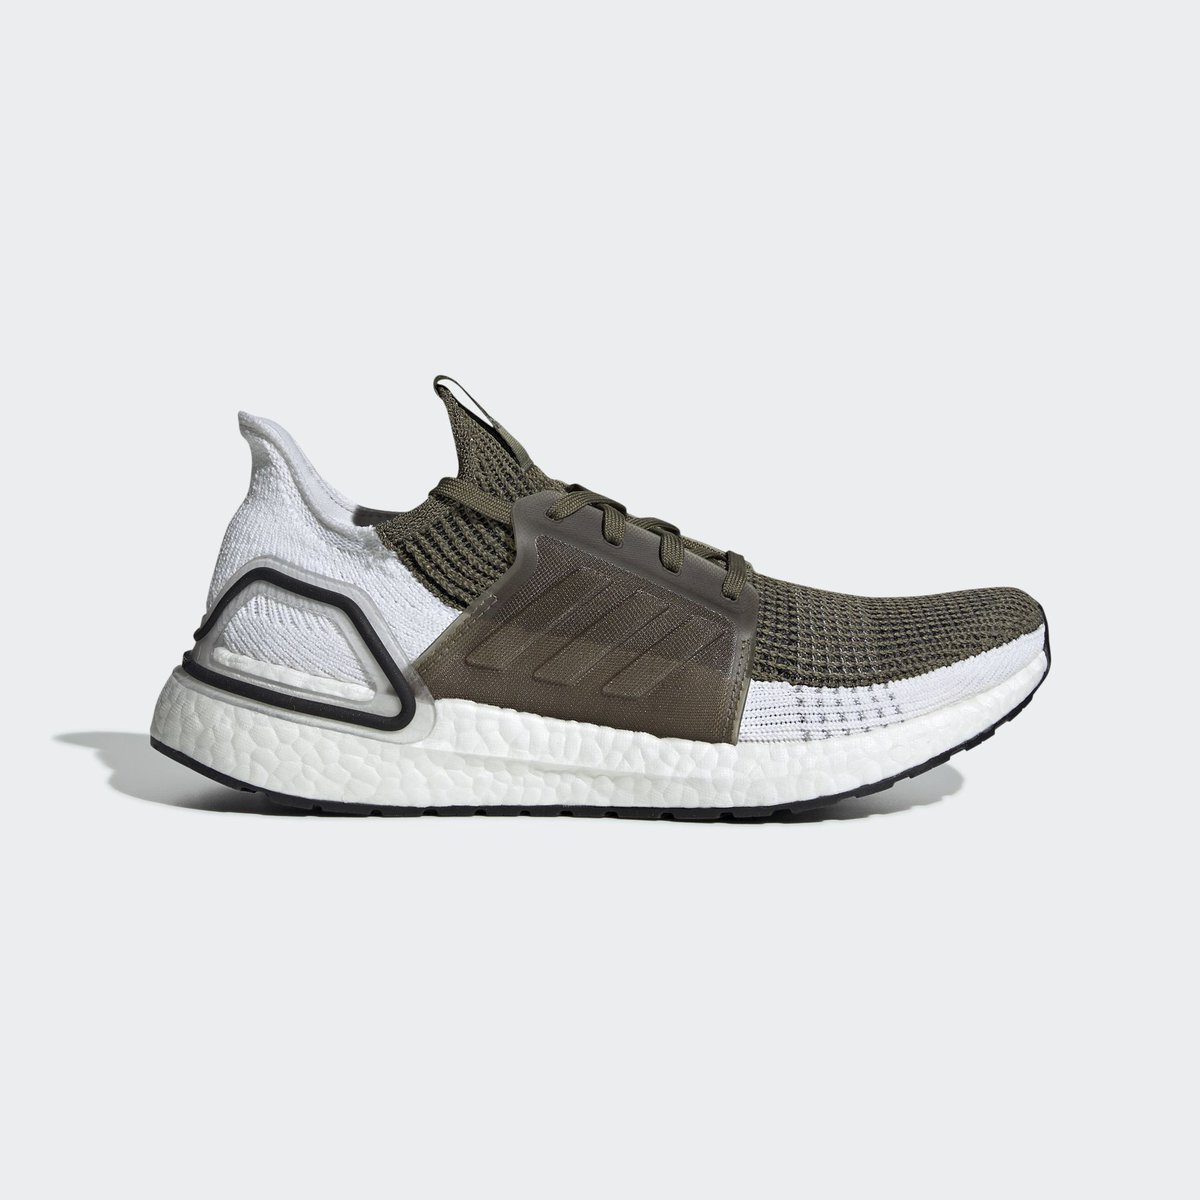 e7667f9faa433 Under retail on  SSENSE. adidas  UltraBOOST19 Raw Khaki. Retail  180. Now   153 shipped. Use code SHOP15 at checkout.